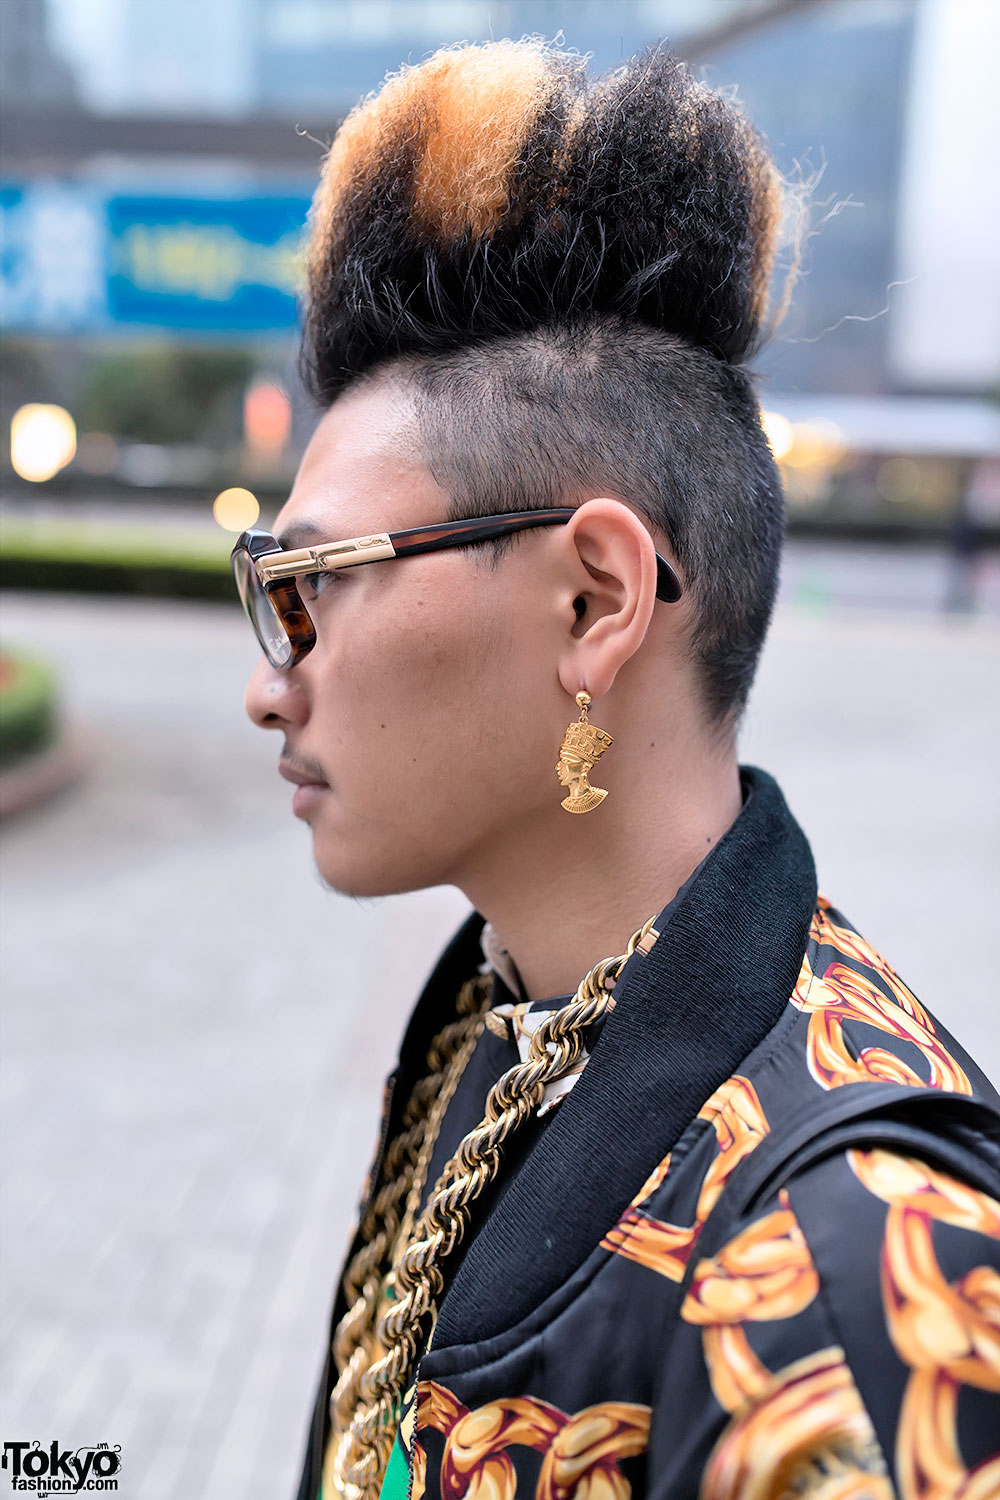 Hi-top Fade, Gold Chains & 1980s Hip Hop-inspired Street Style